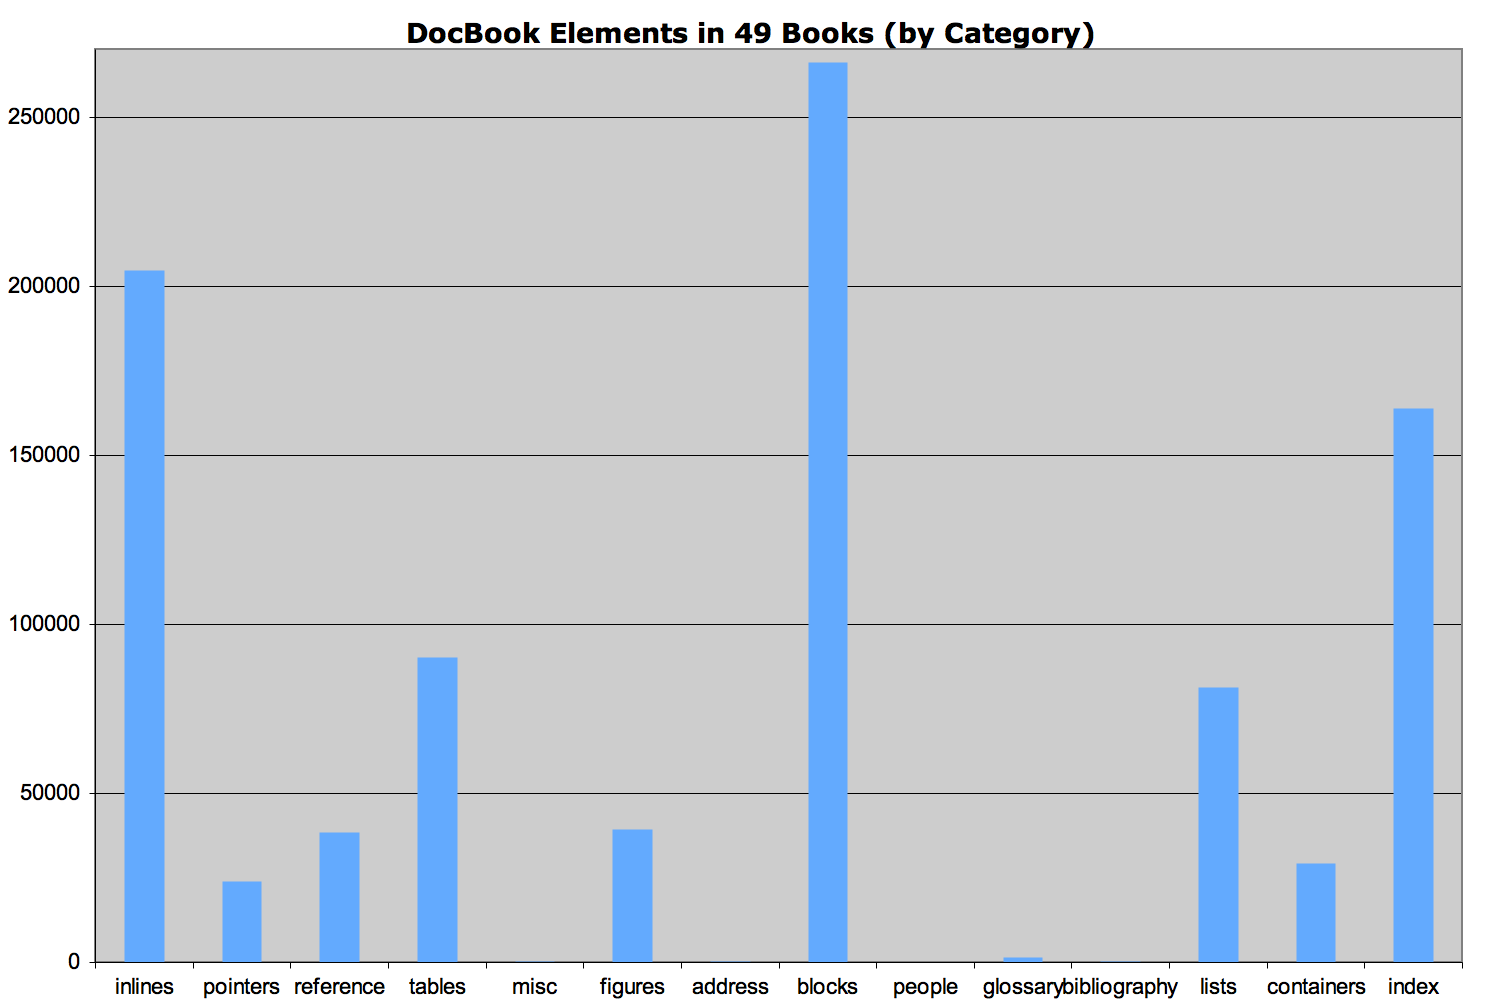 DocBook Elements from 49 Books, Categorized